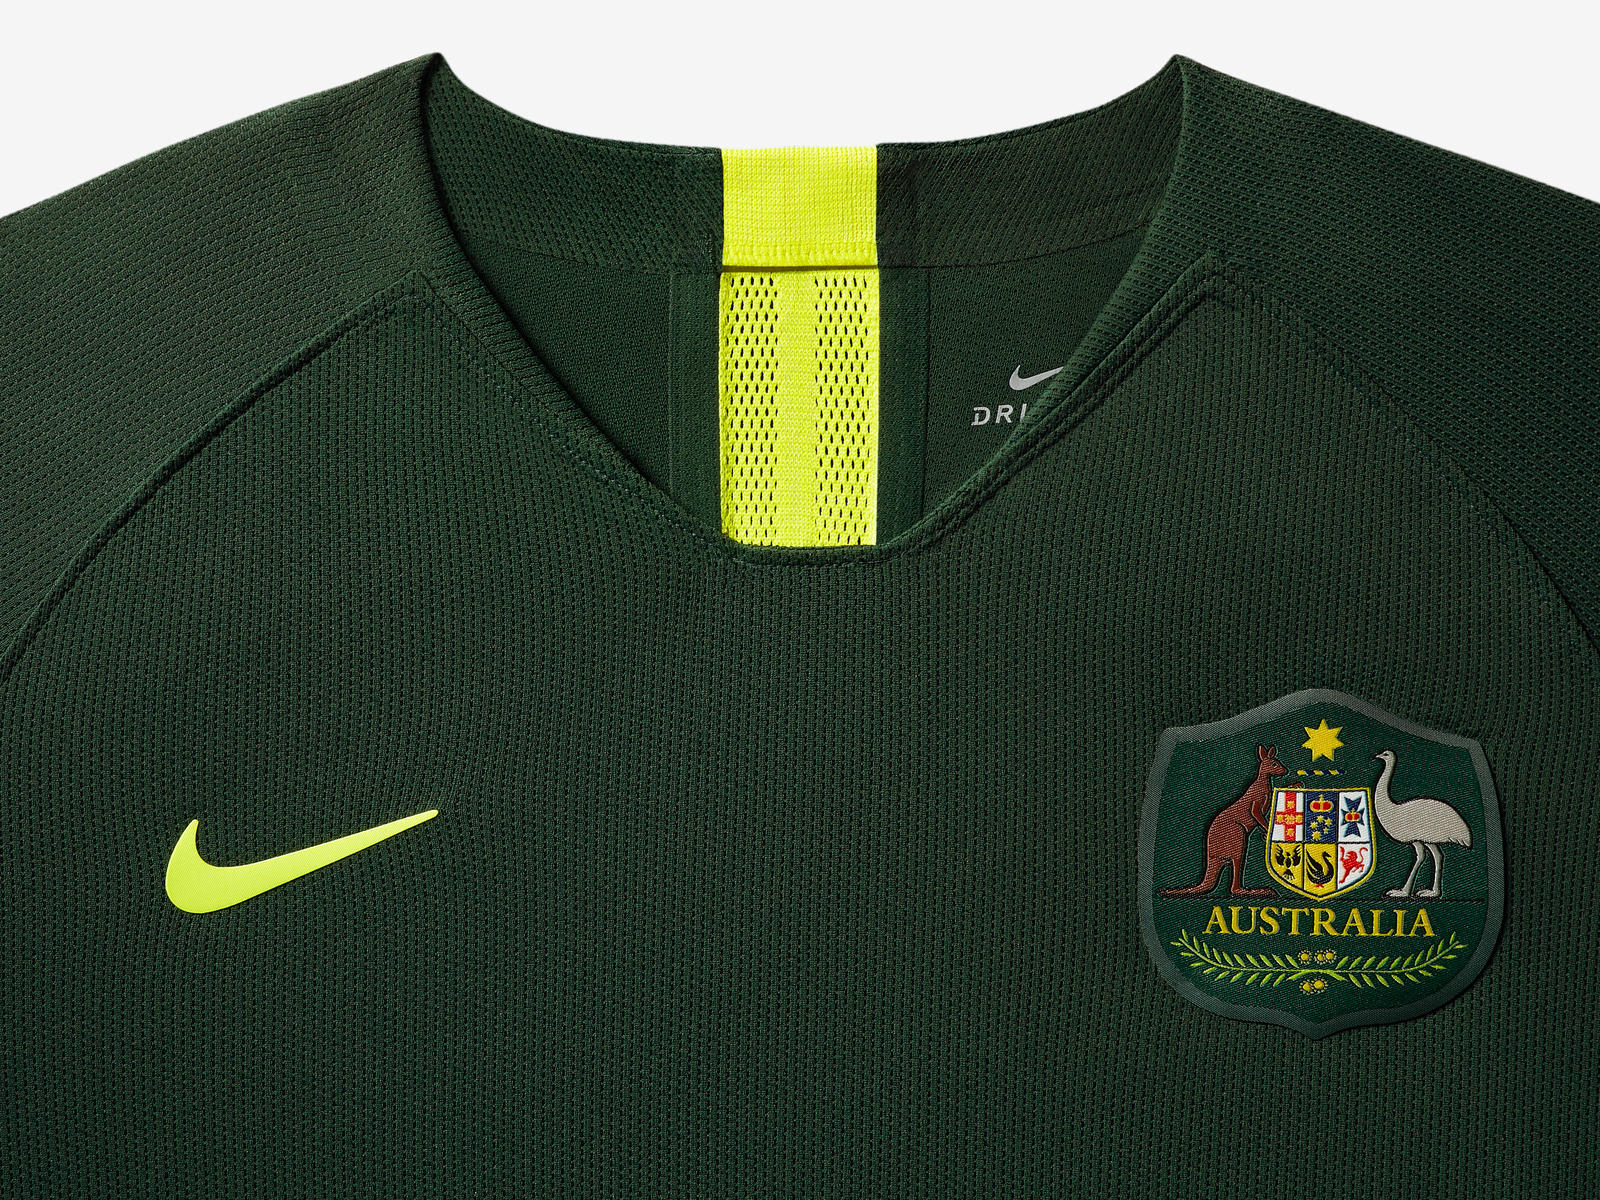 australia-national-team-kit-2019-laydown-1_85905.jpg